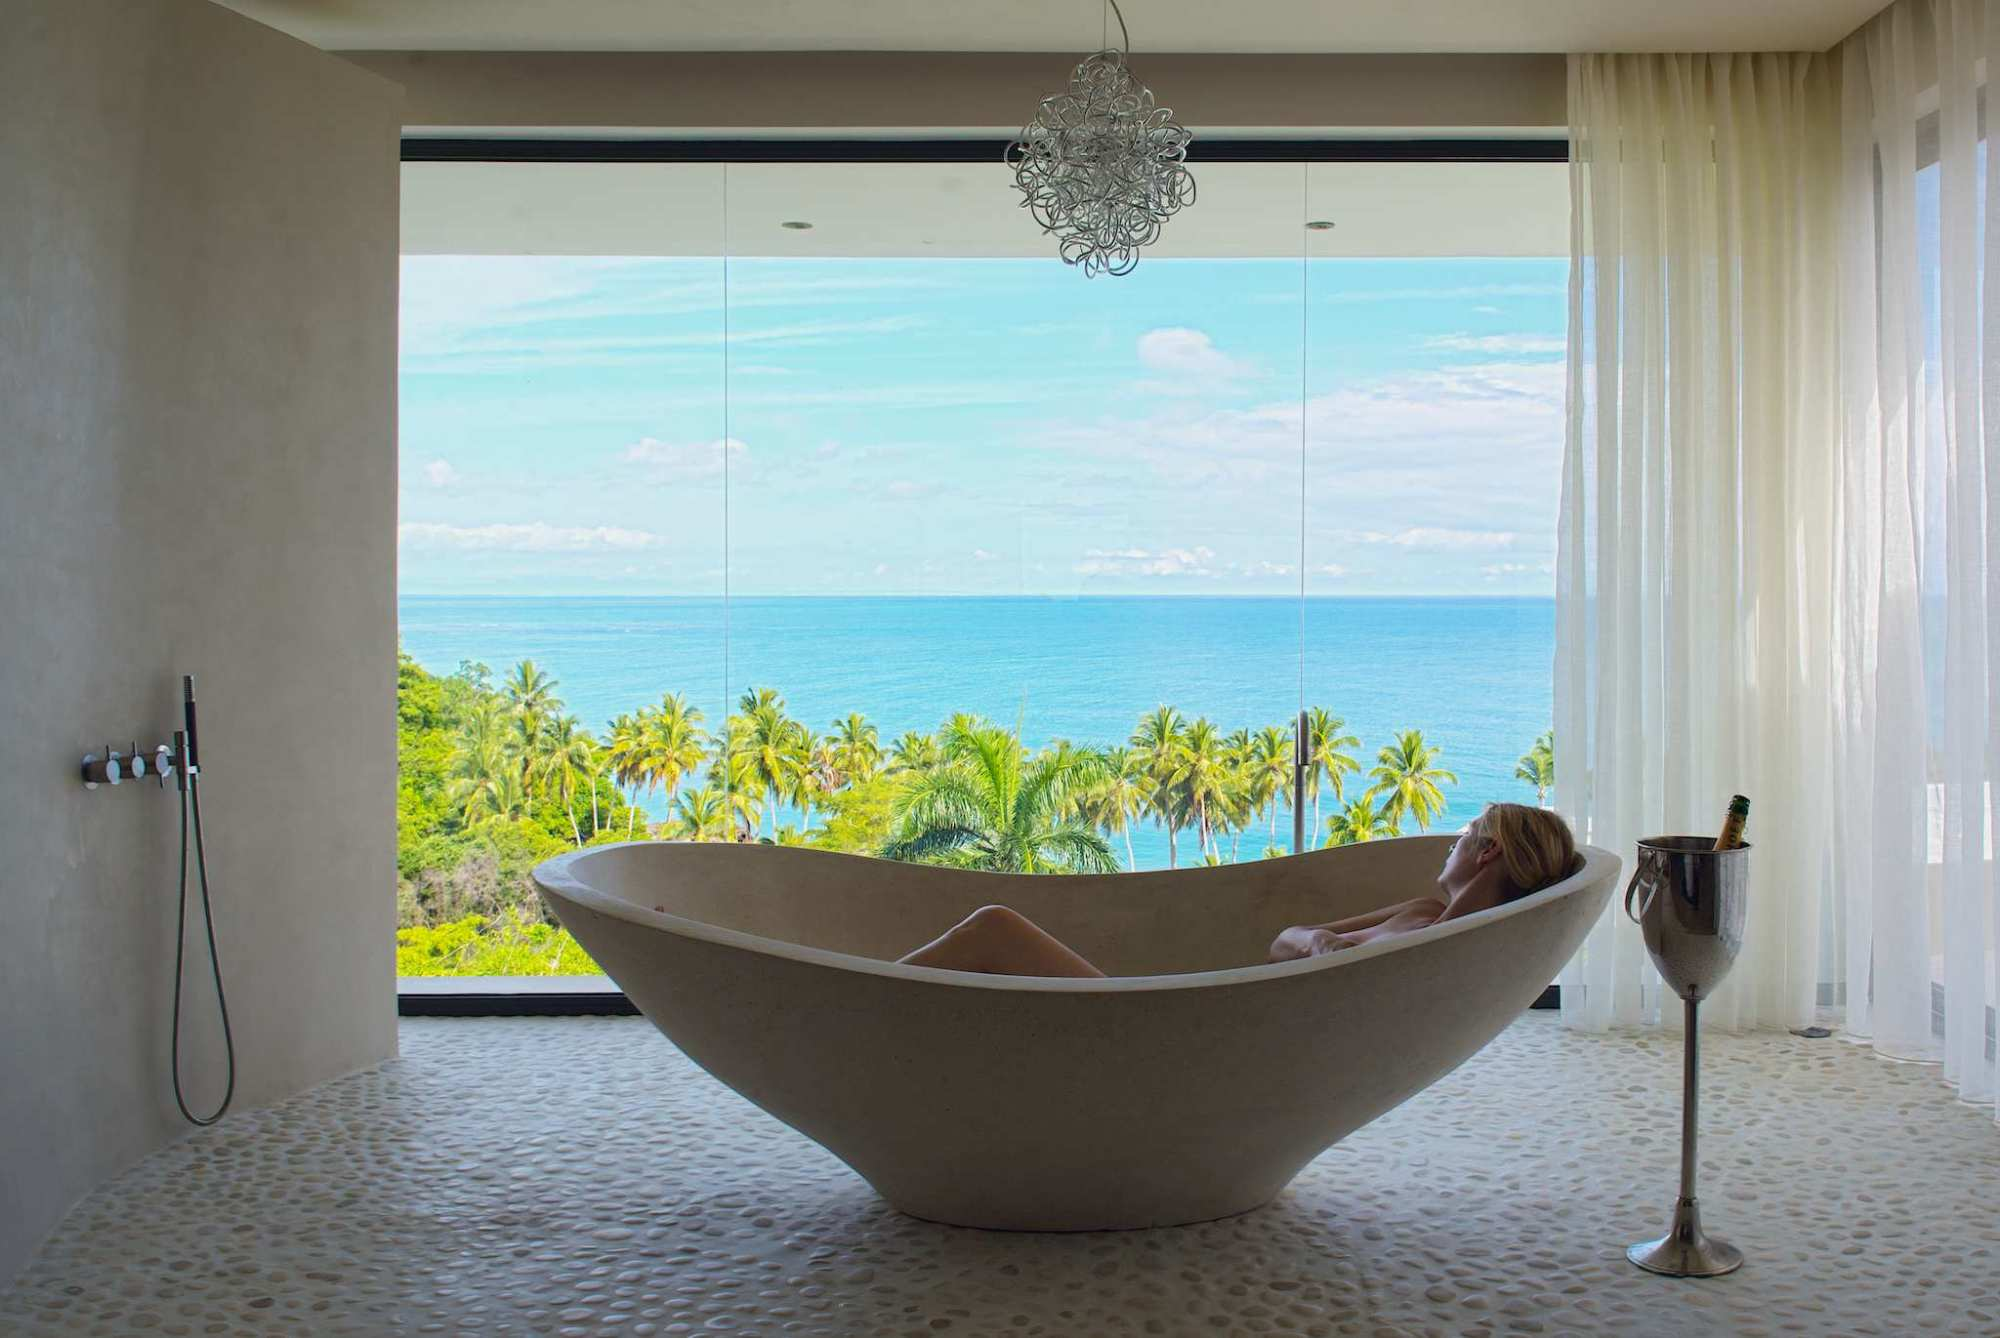 https://www.uncommoncaribbean.com/dominican-republic/wish-you-were-here-starting-the-day-with-a-bath-above-las-terrenas/